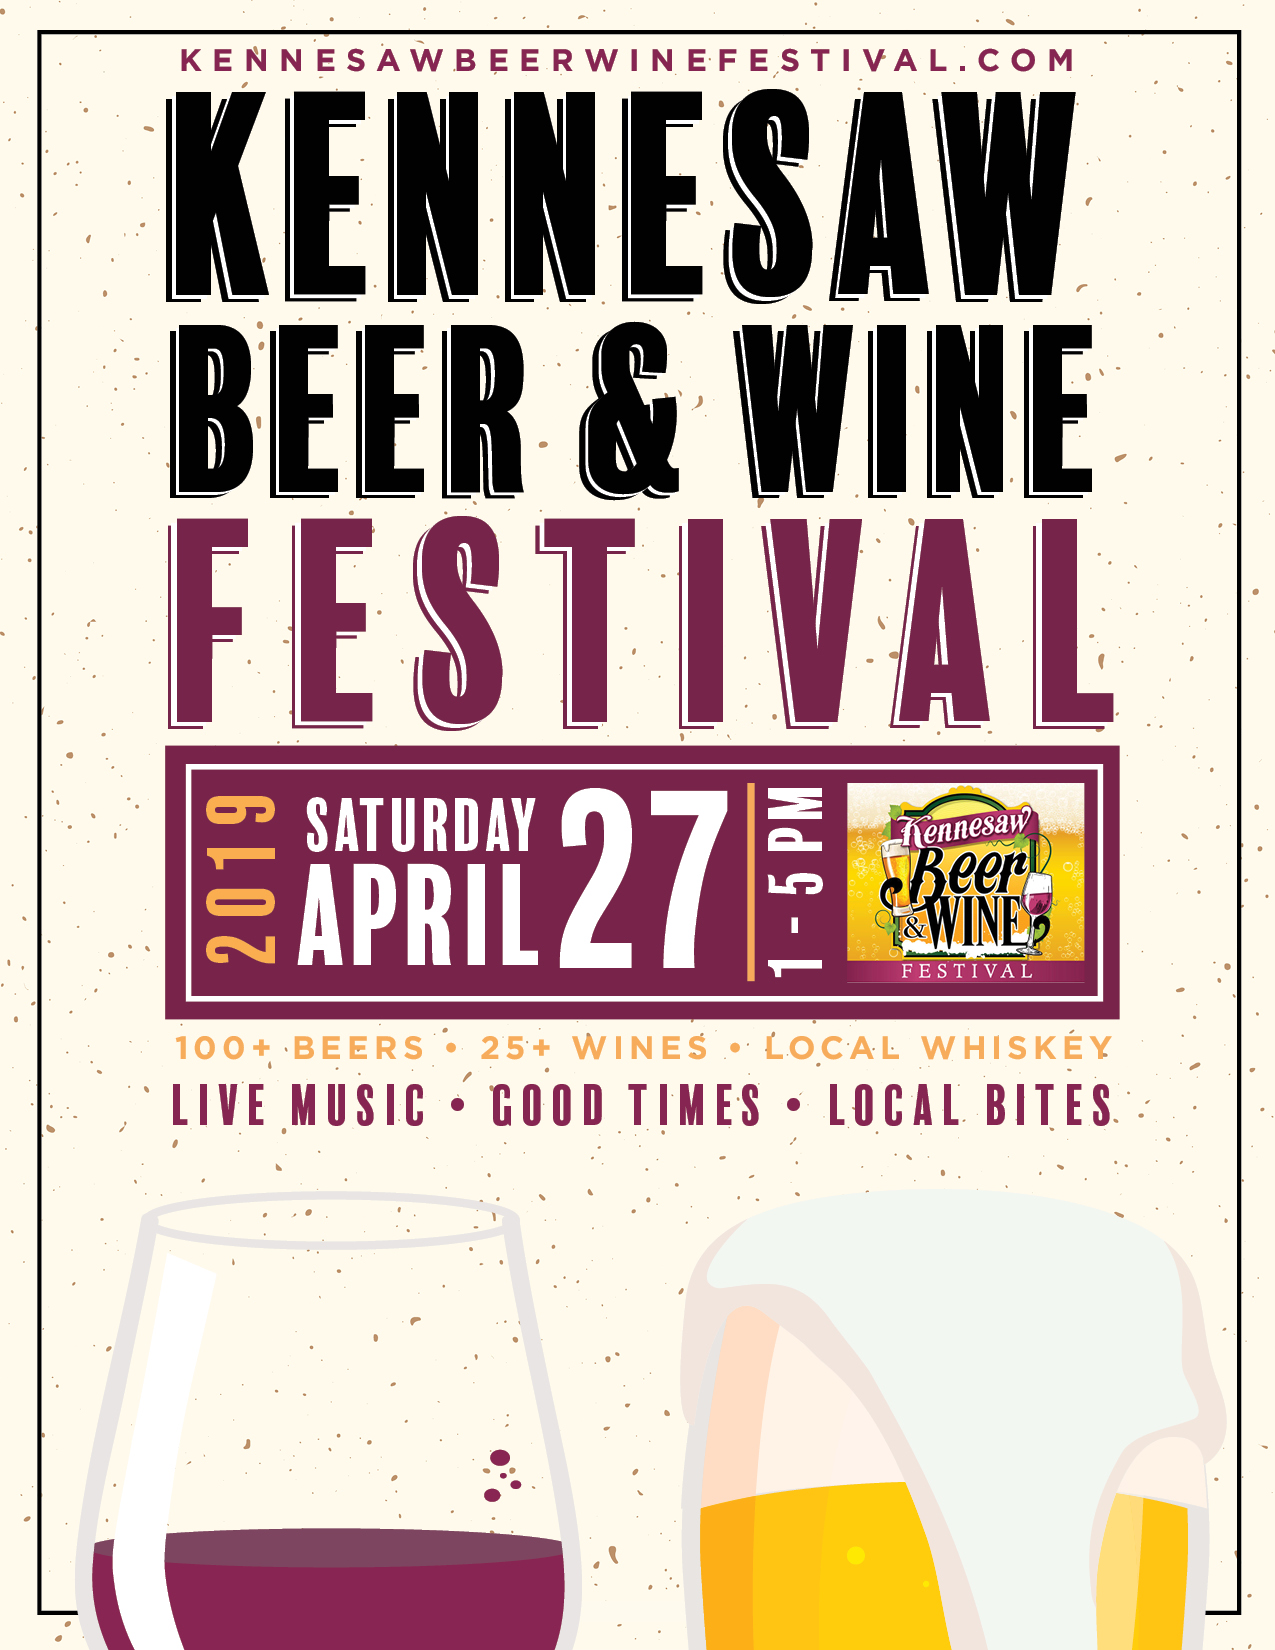 Poster concept 2 for Kennesaw Beer & Wine Festival